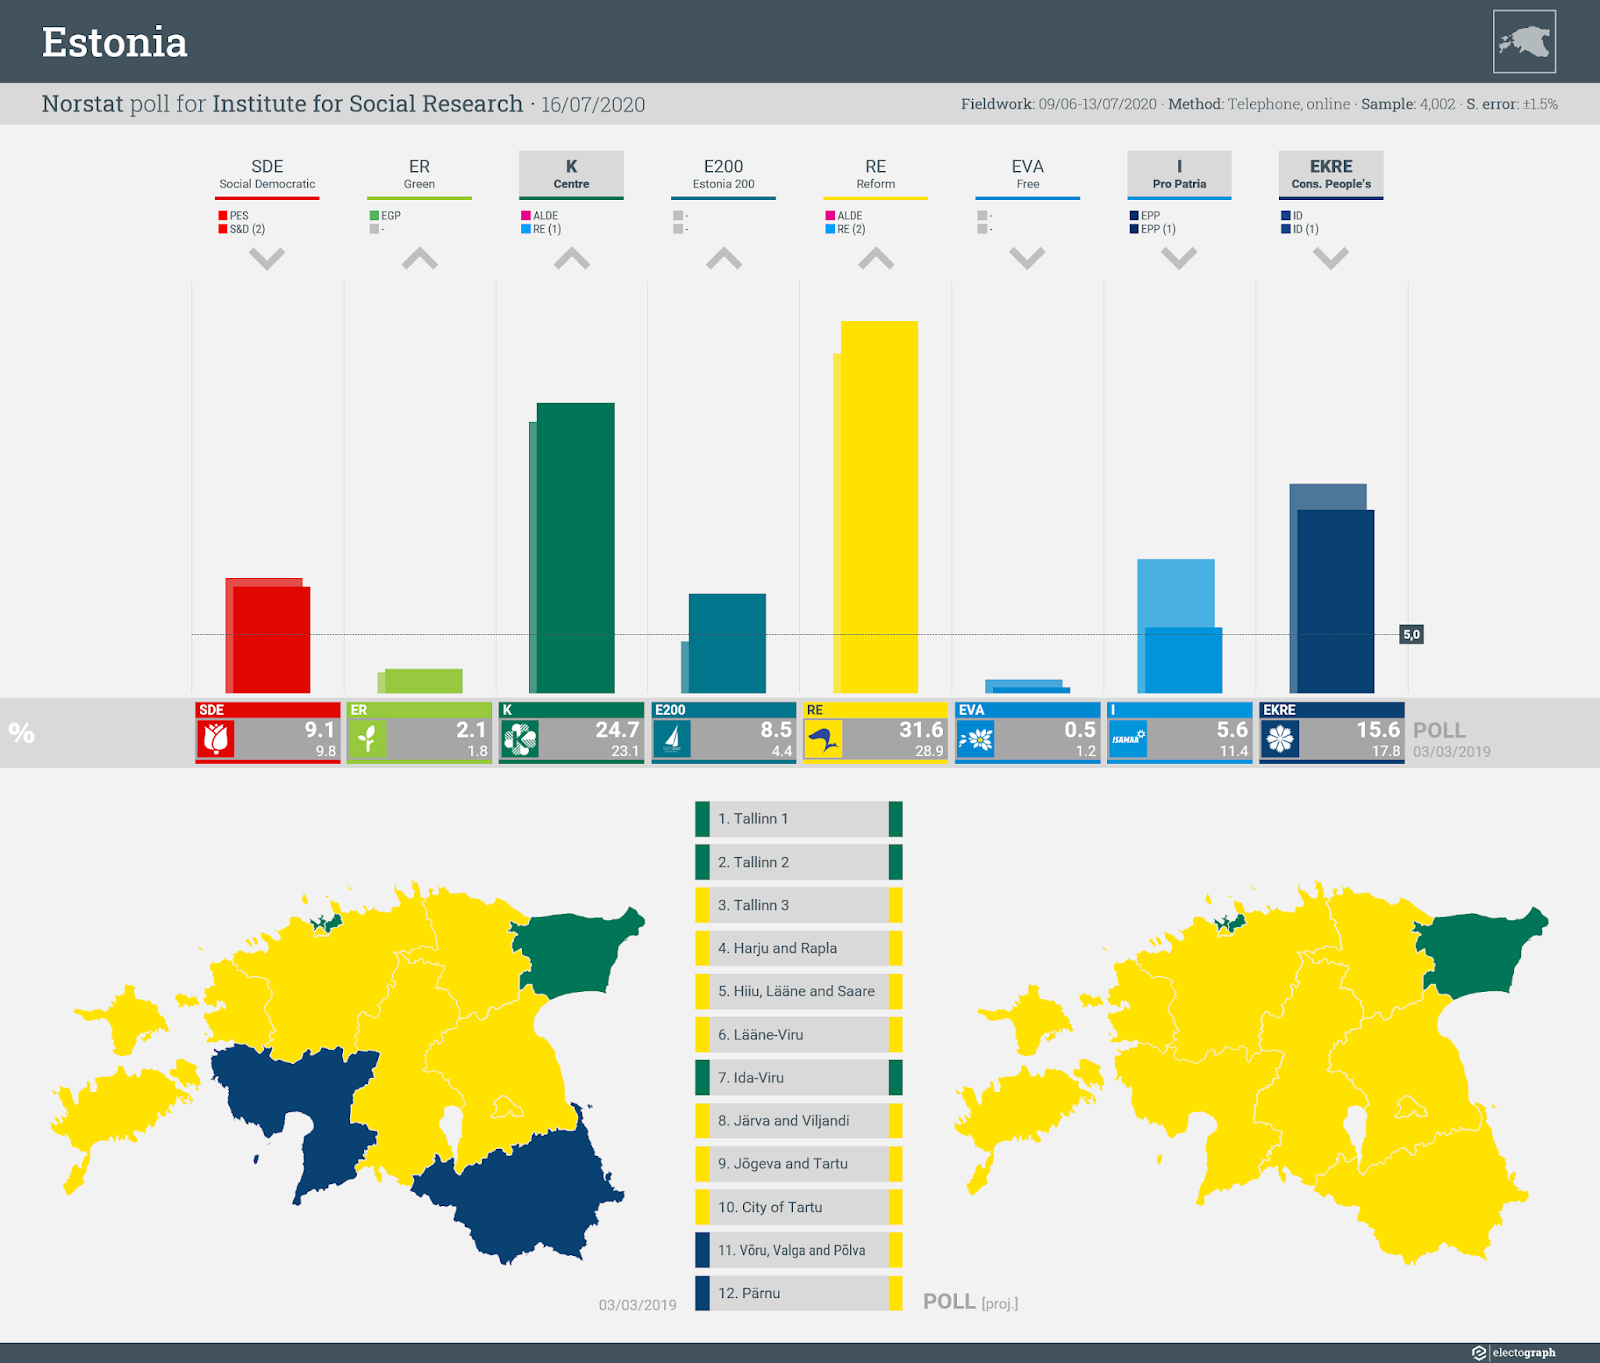 ESTONIA: Norstat poll chart for Institute for Social Research, 16 July 2020